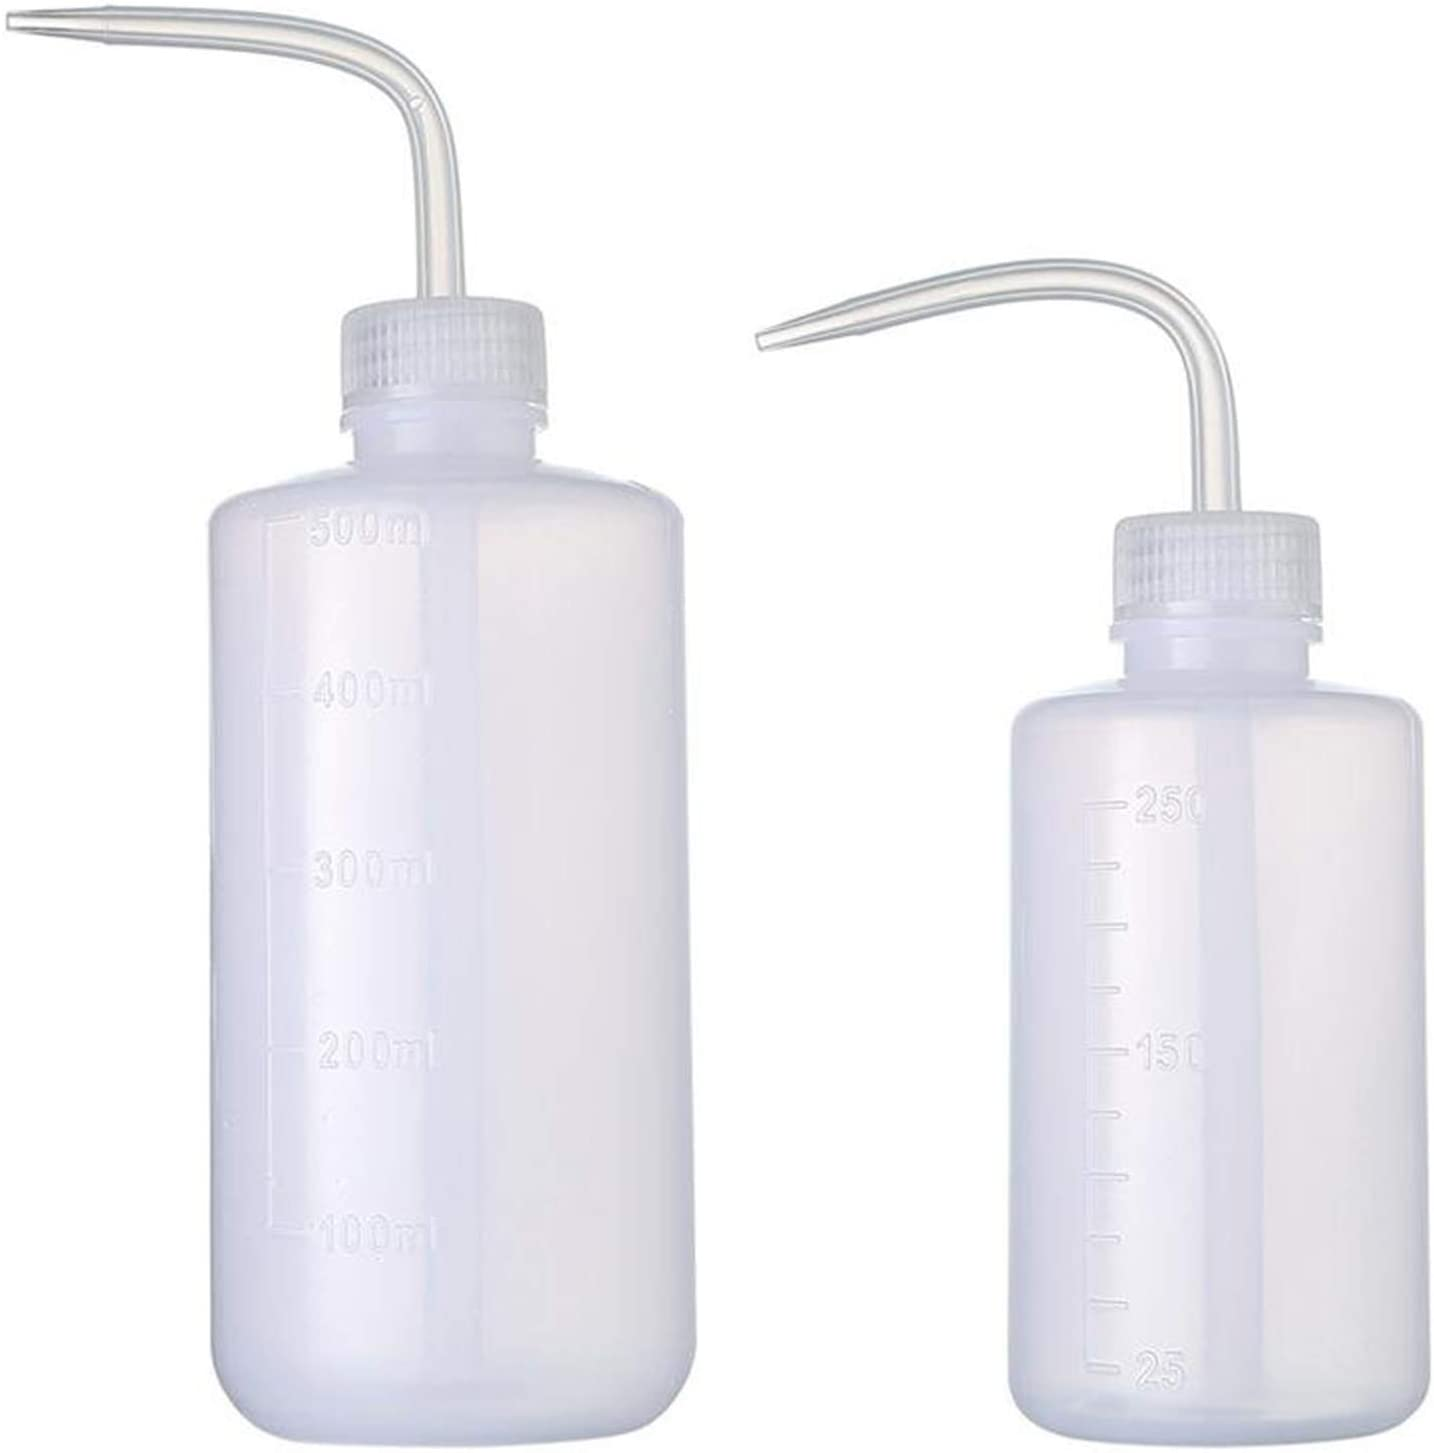 Wash bottle LDPE Bottle with Narrow Mouth 250ml 500ml (Pack of 2)